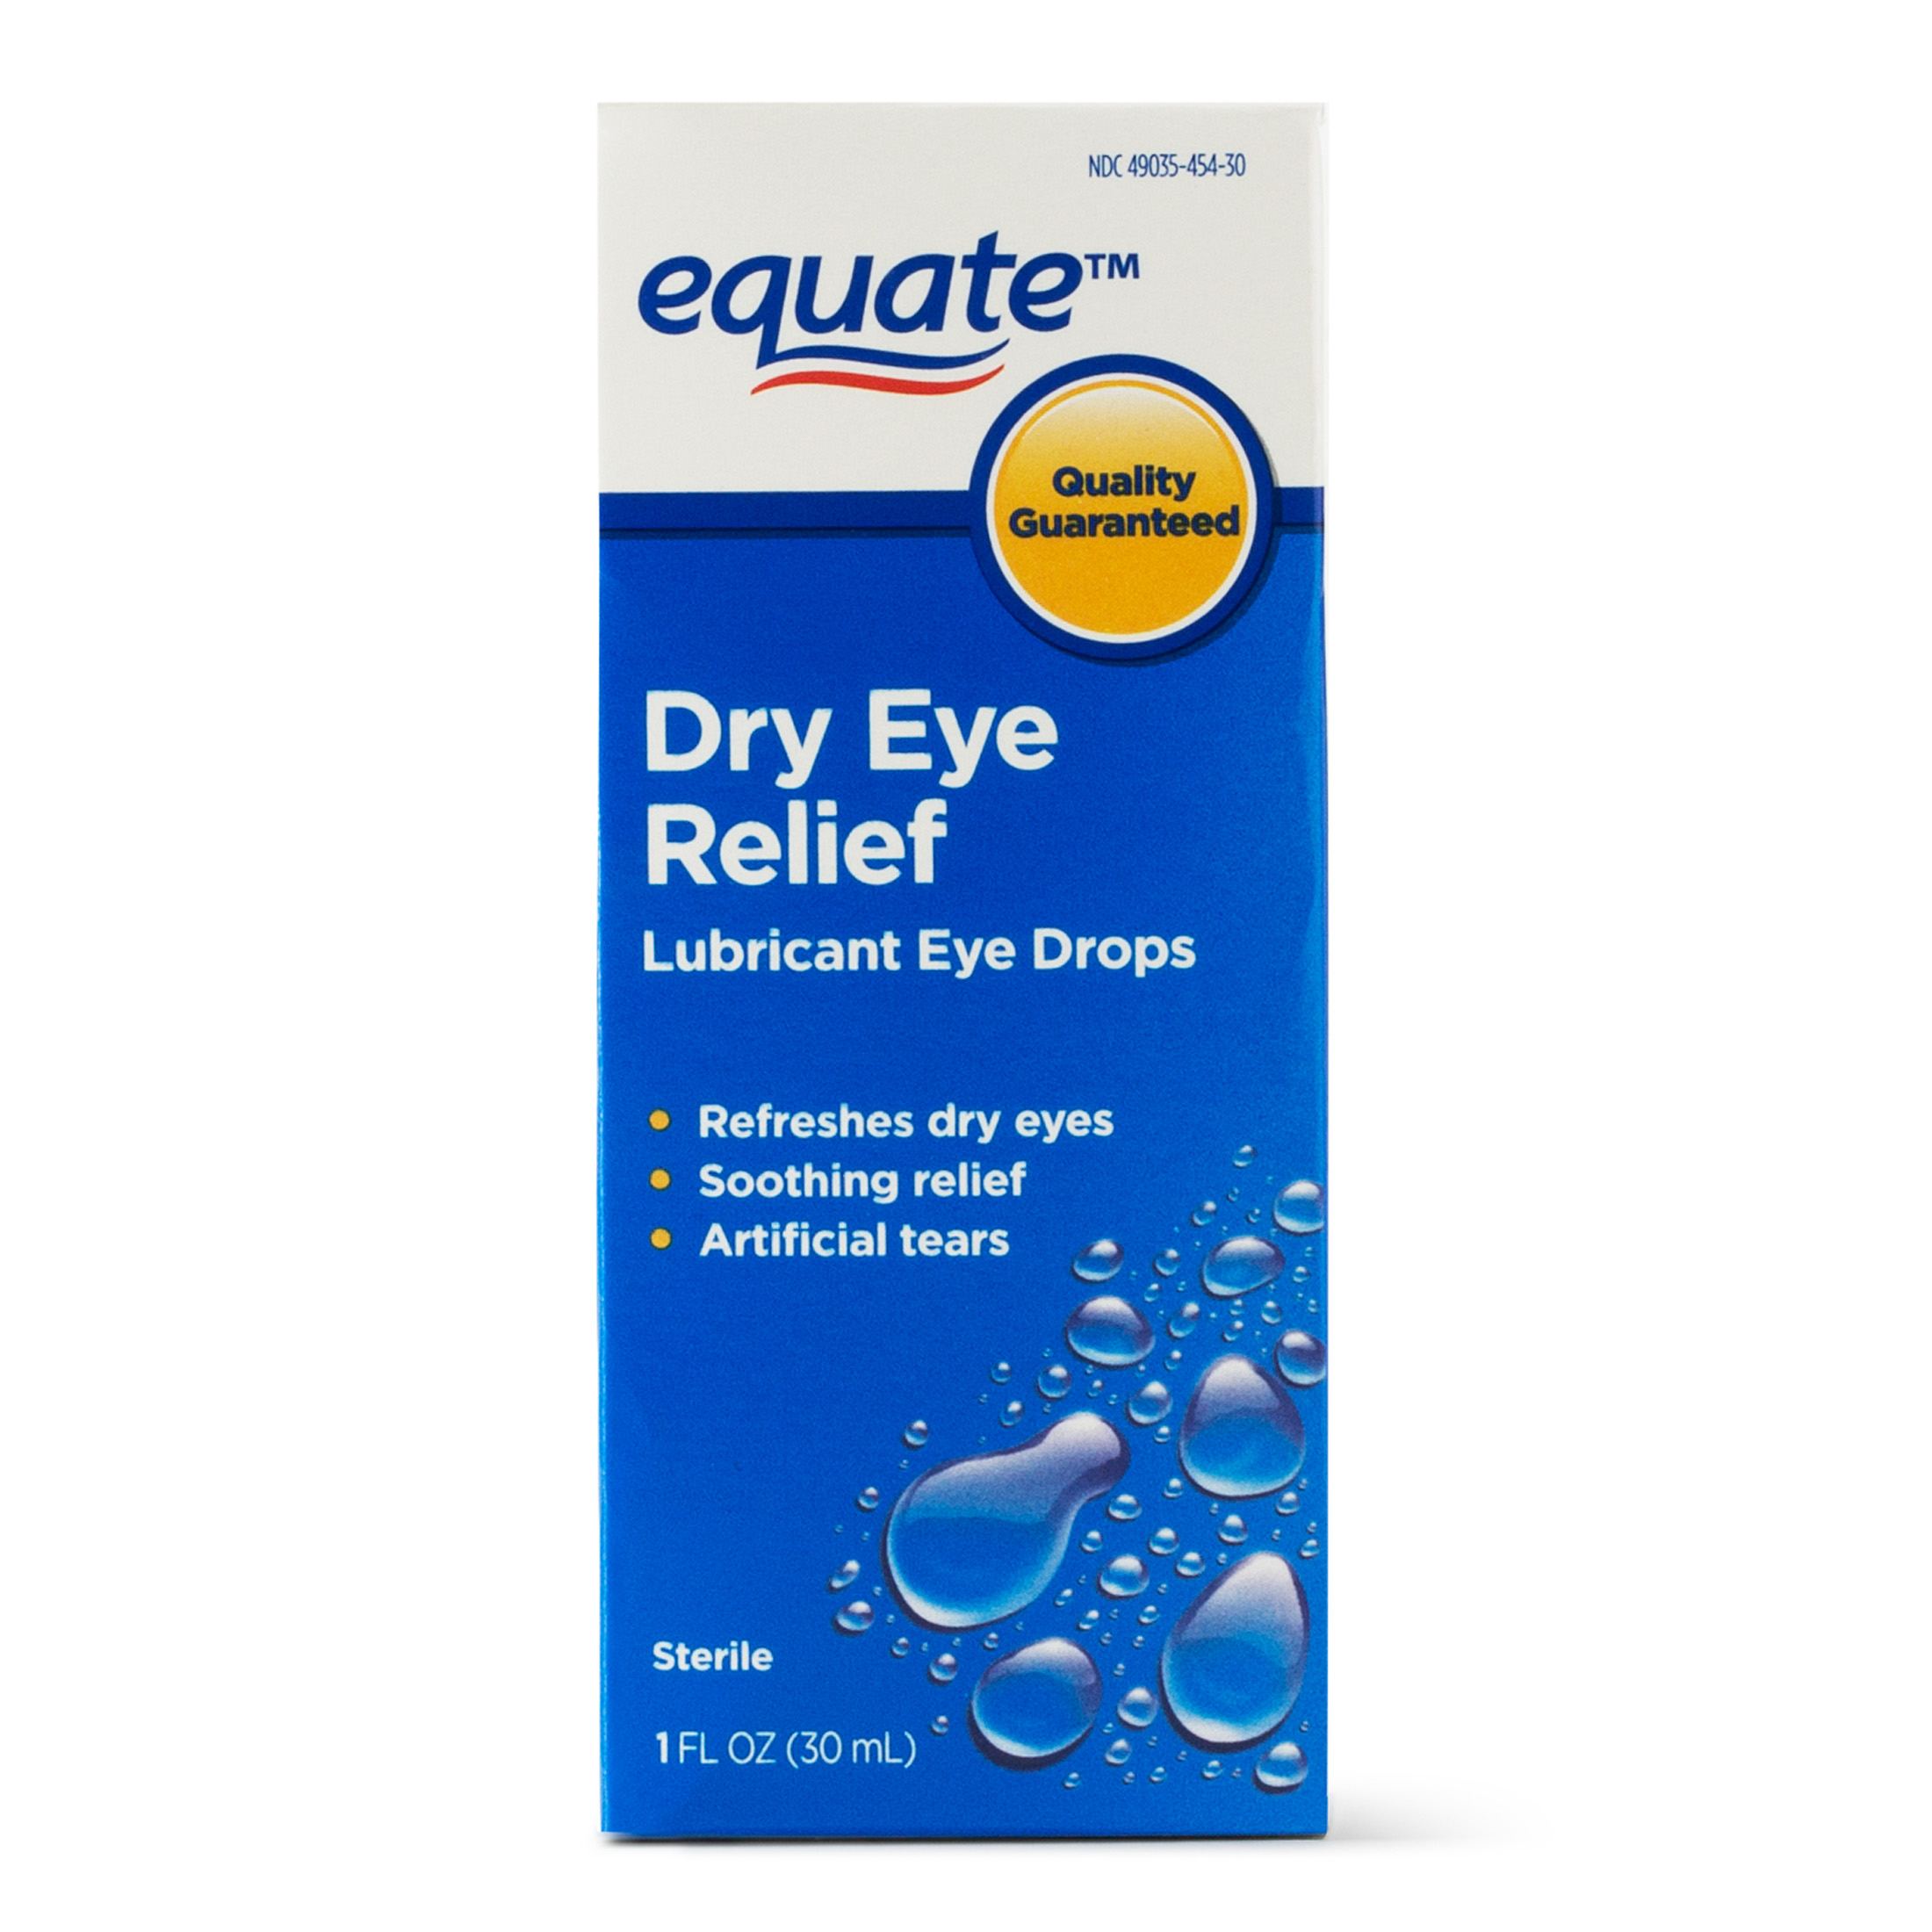 Equate Dry Eye Relief Lubricant Eye Drops Liquid, 1 Oz - Walmart.com at Walmart - Vision Center in Connersville, IN | Tuggl